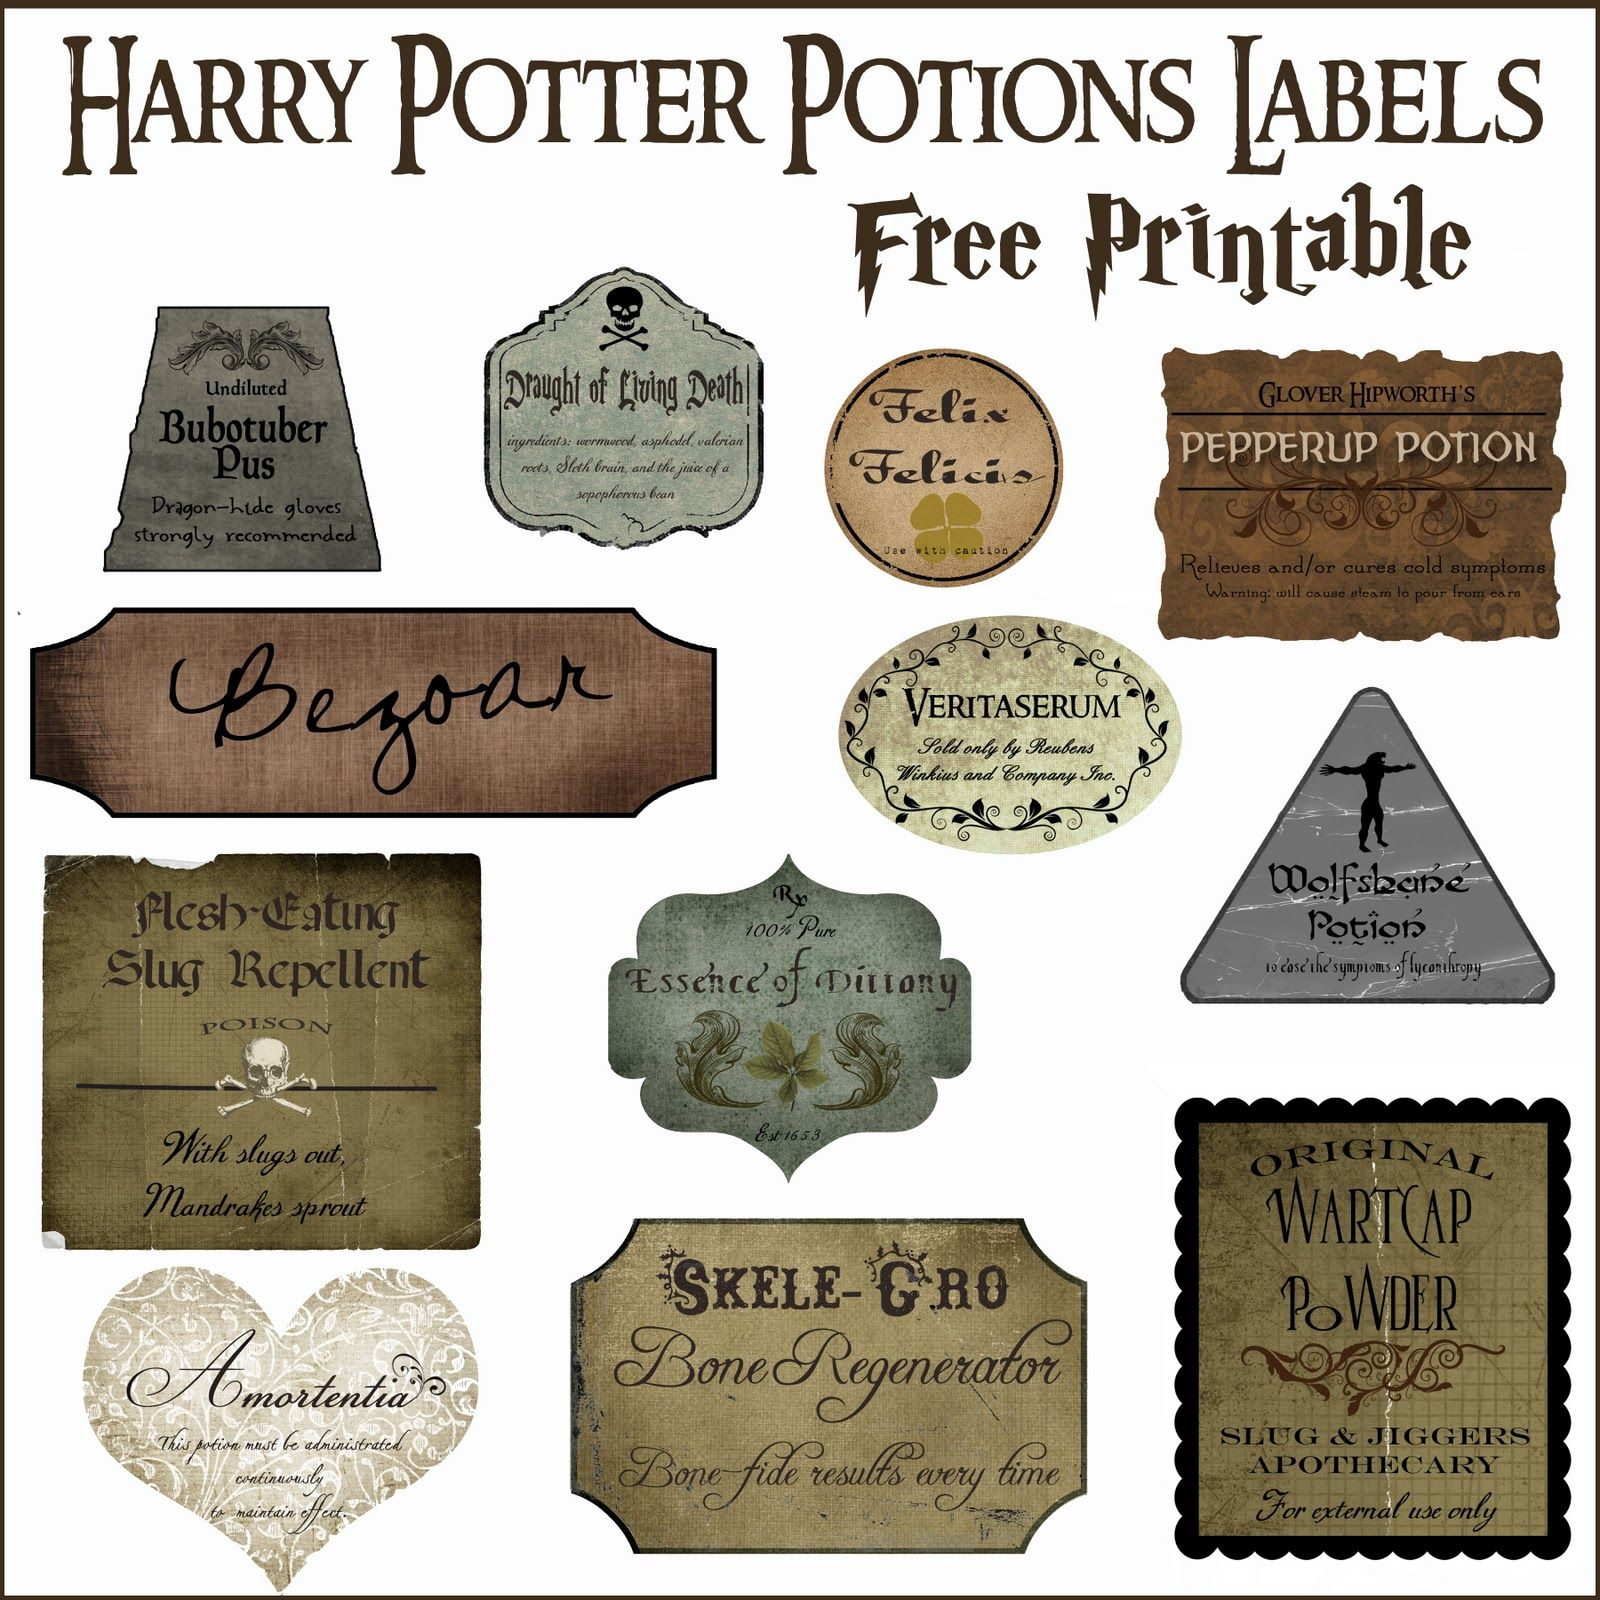 id es d 39 anniversaire harry potter et printables gratuits pour organiser un anniversaire. Black Bedroom Furniture Sets. Home Design Ideas